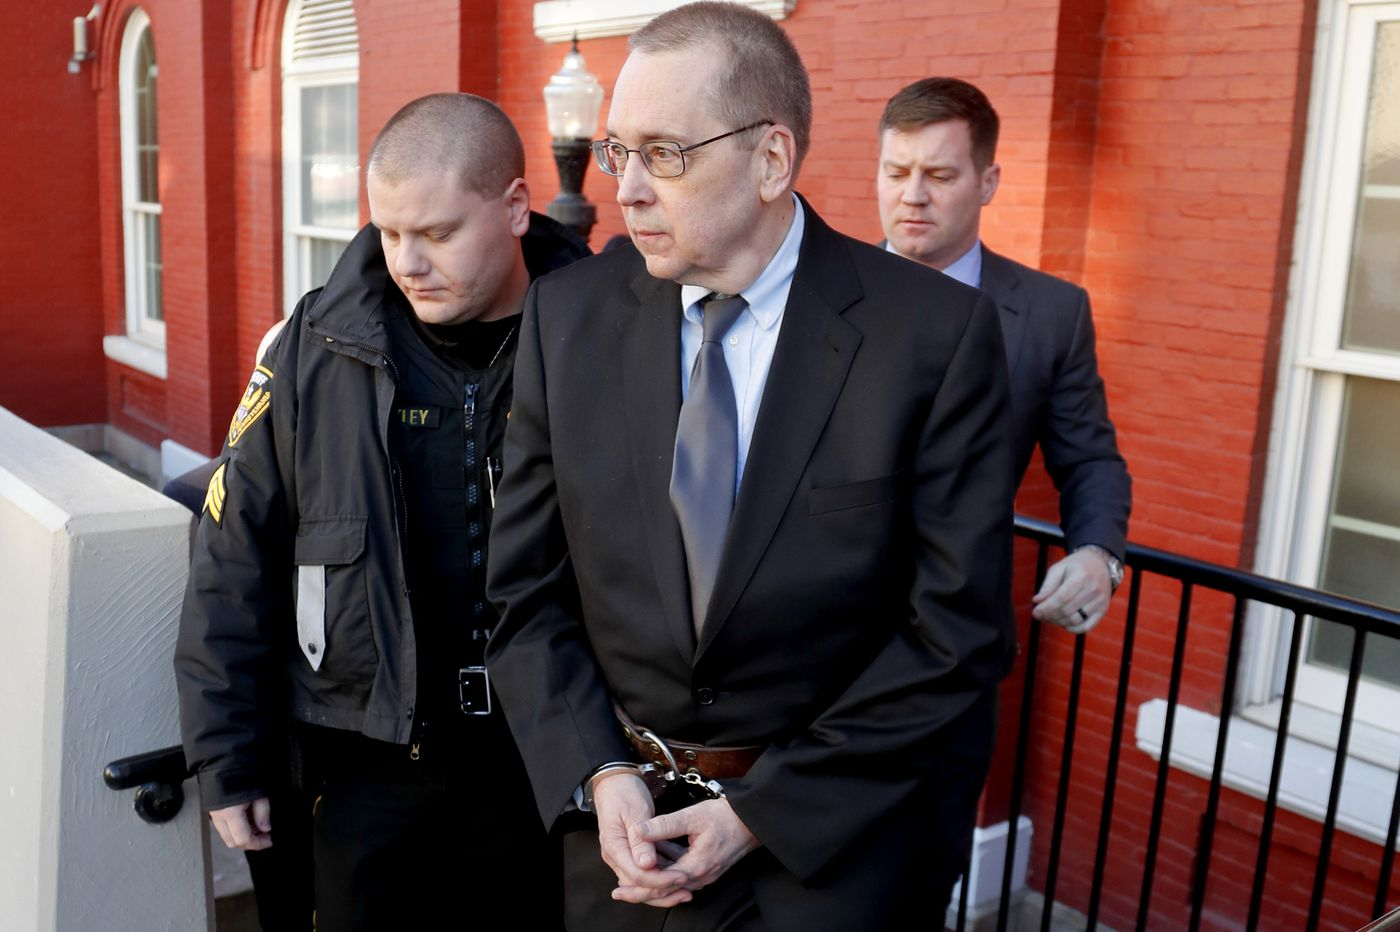 Priest who abused boys, made 1 confess, sentenced to prison